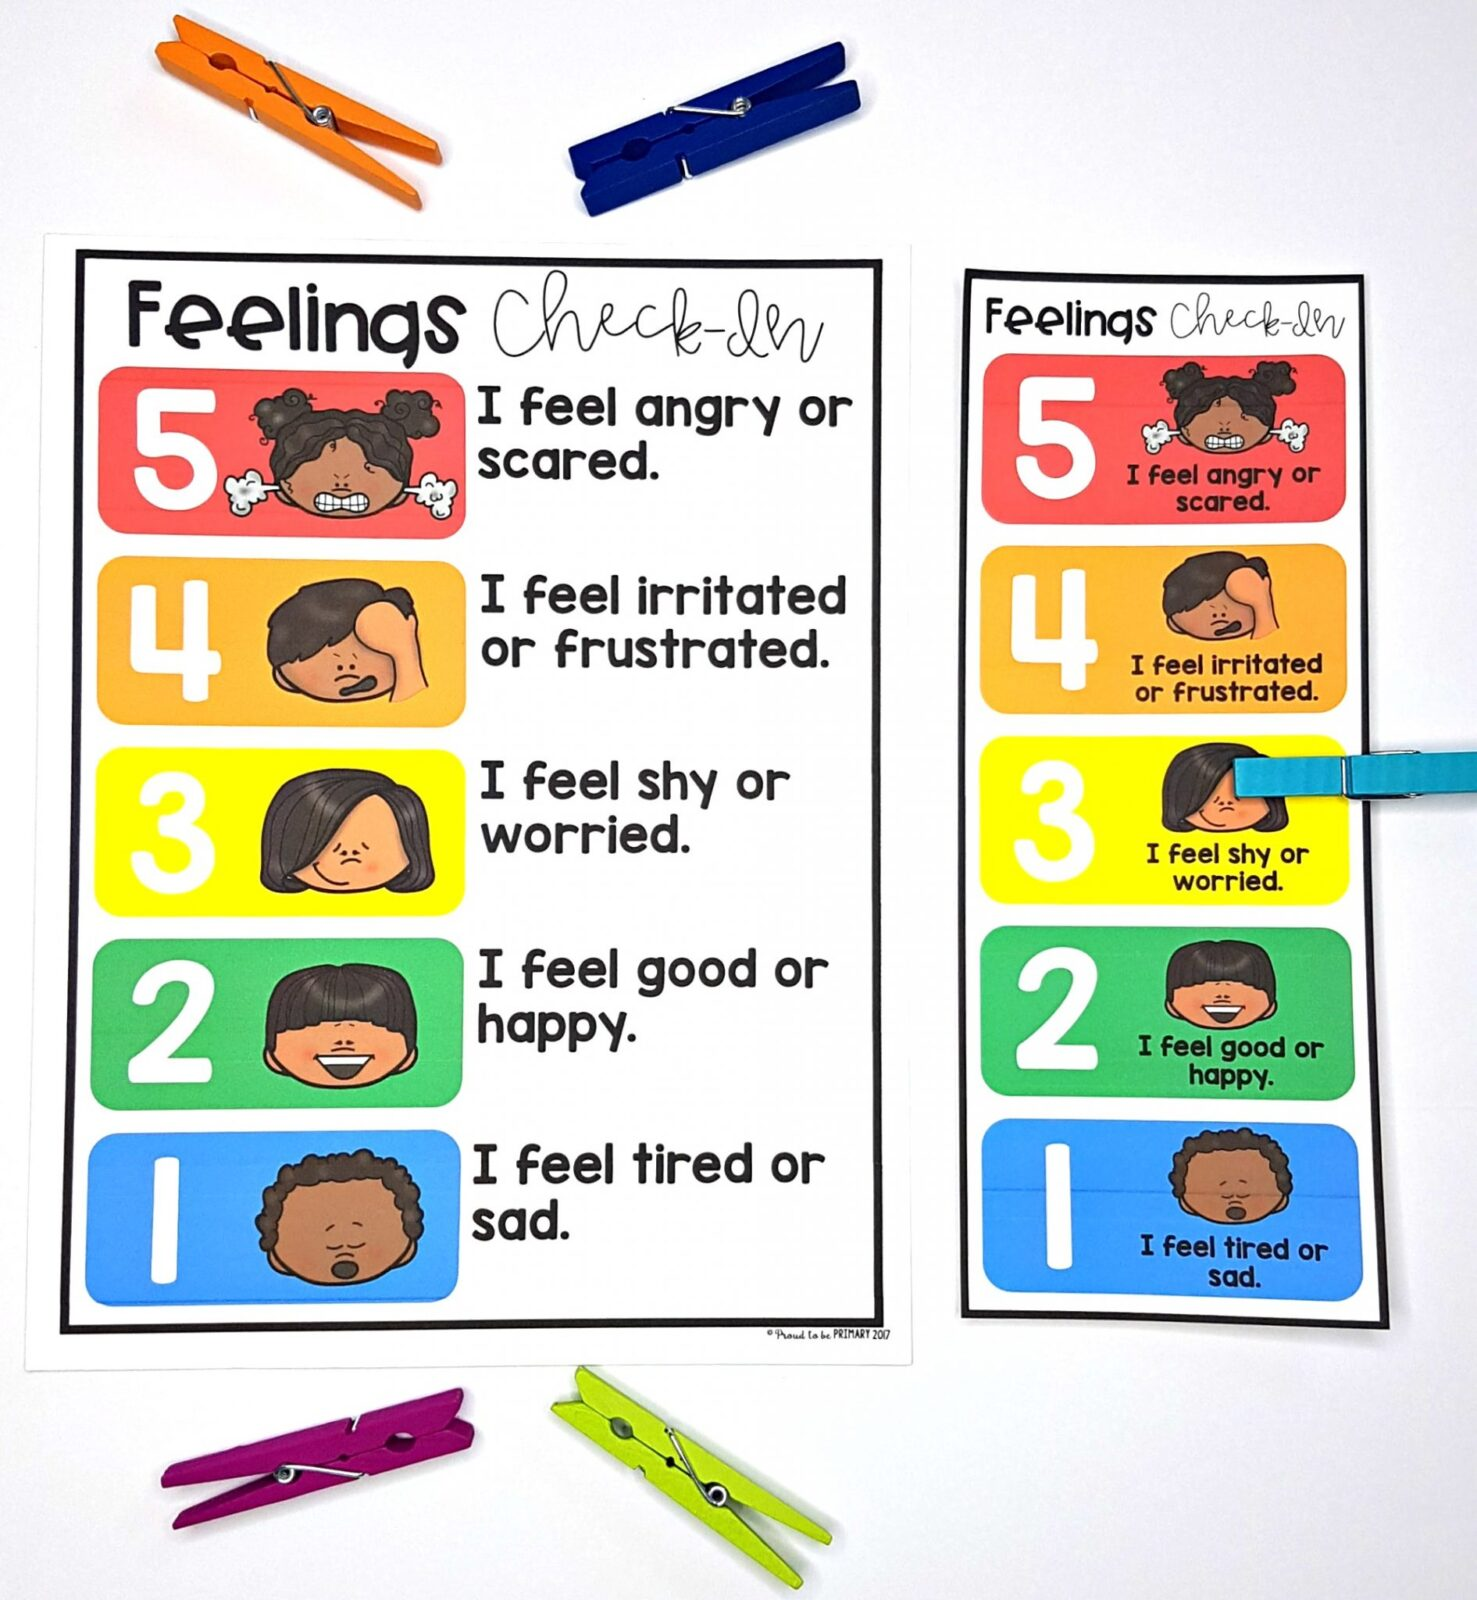 teaching self-regulation skills in the classroom - feelings clip chart